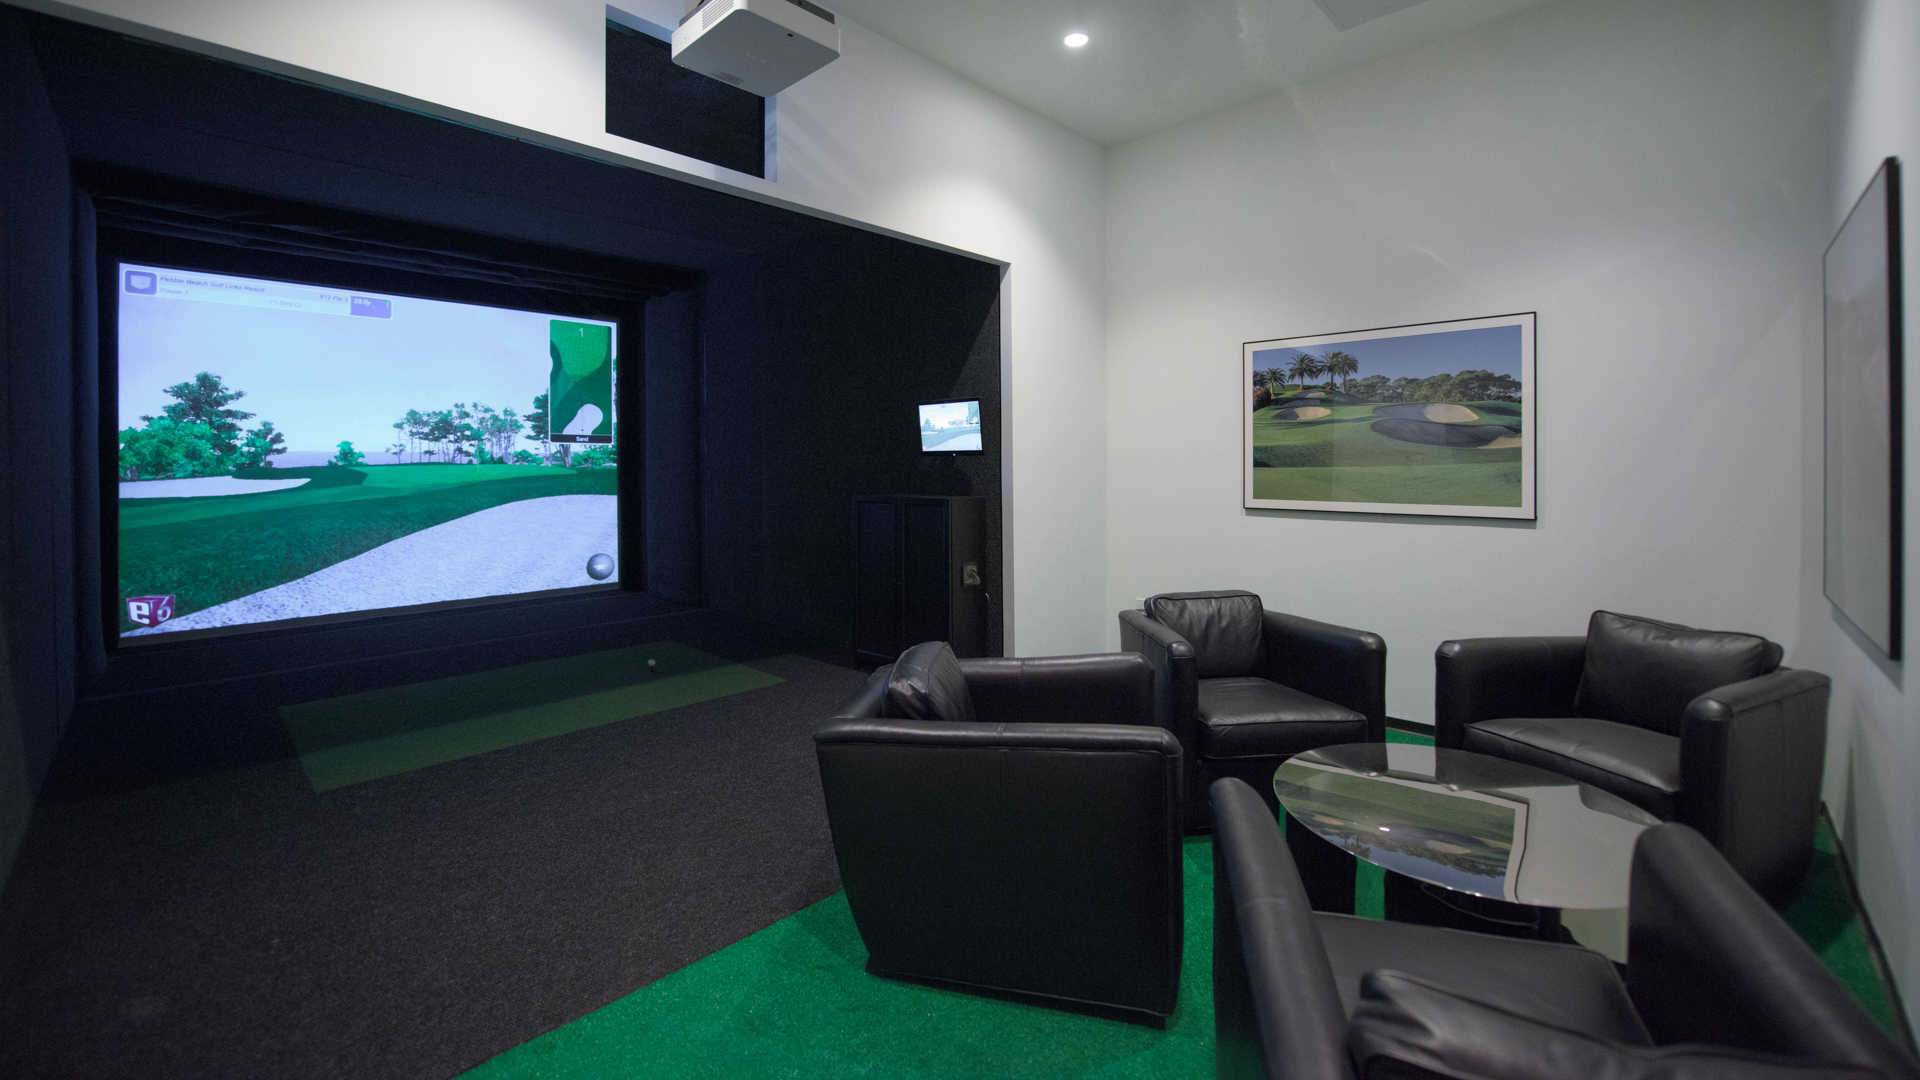 Golf Simulator and Game Room